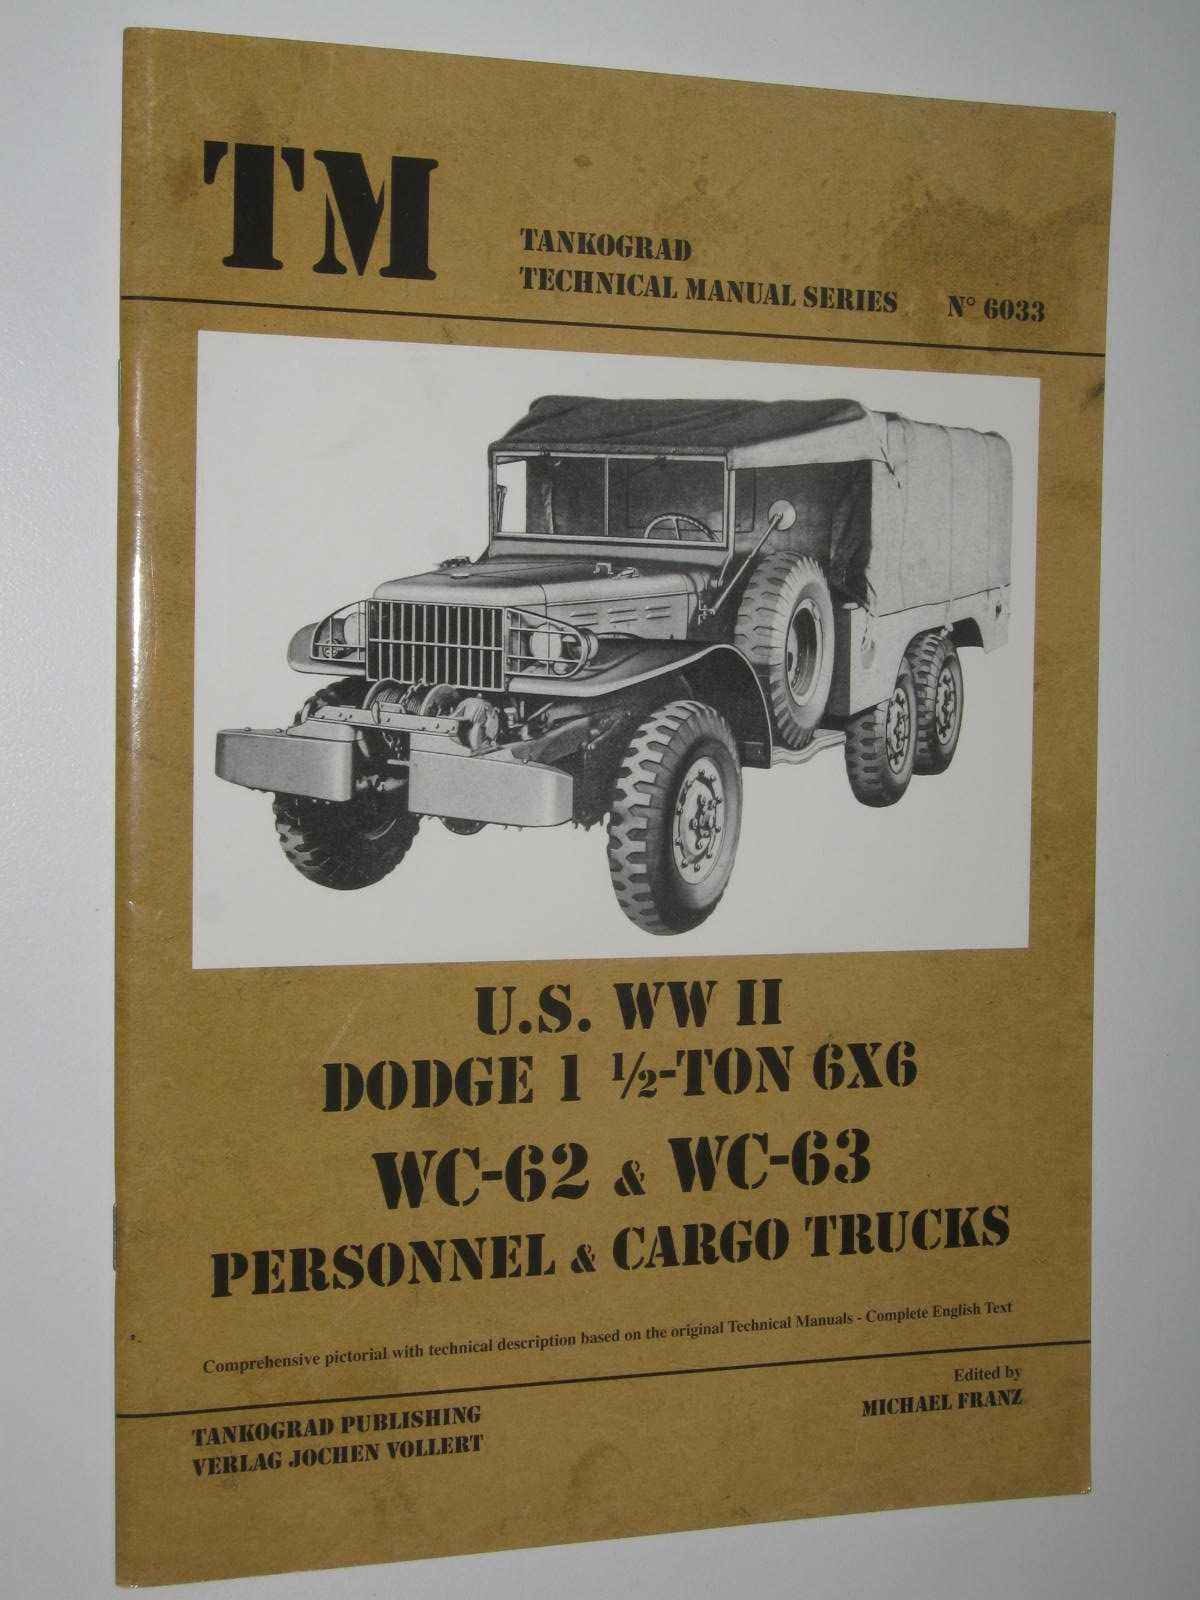 Image for U.S. Army WWII Dodge WC 6x6 Trucks - Technical Manual Series #6033